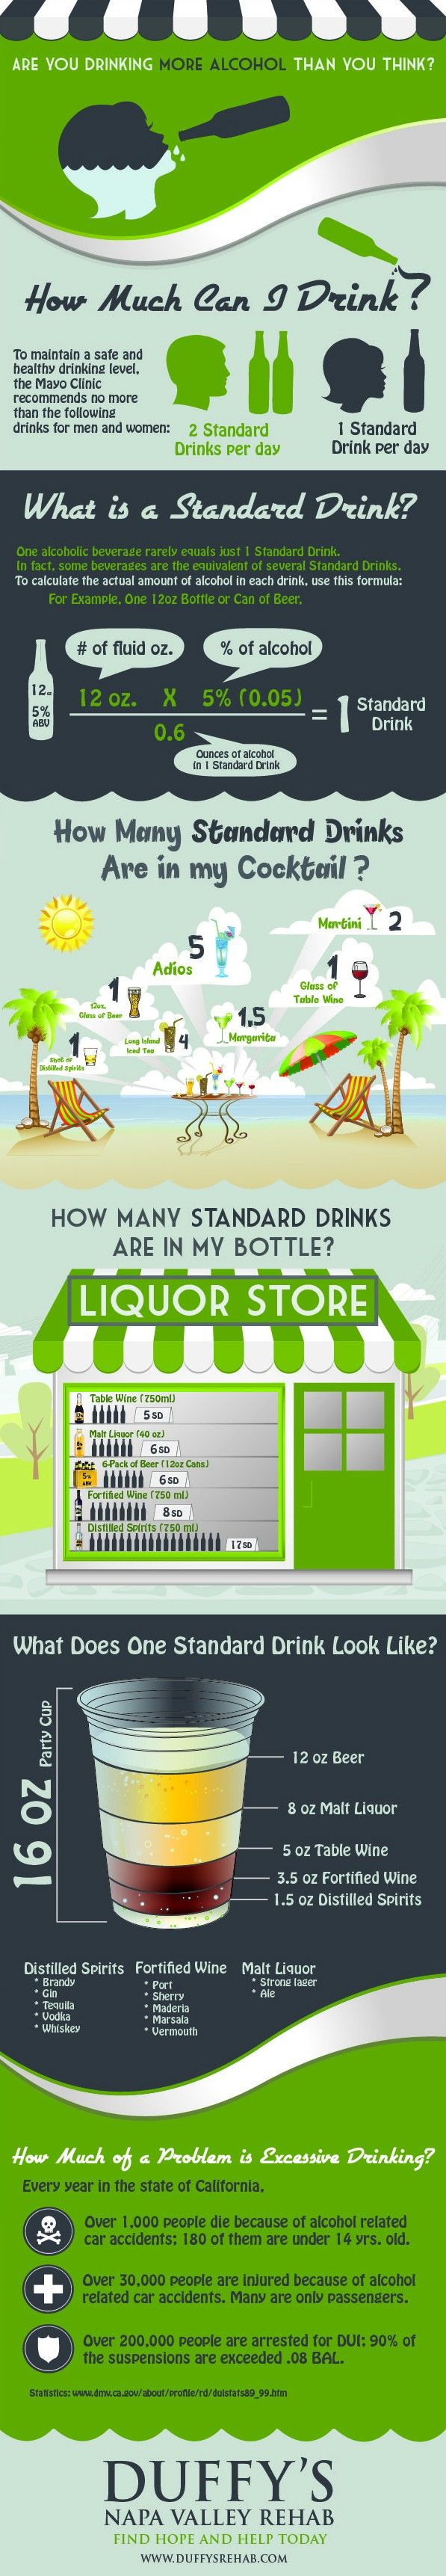 What Is A Standard Drink Of Alcohol?  Each alcoholic beverage has a different percentage of alcohol in it, so a unit of measure, called the Standard Drink, is used to help us understand how potent a particular drink is and track how much alcohol we're adding to our bodies.  #alcohol #standarddrink #infographic